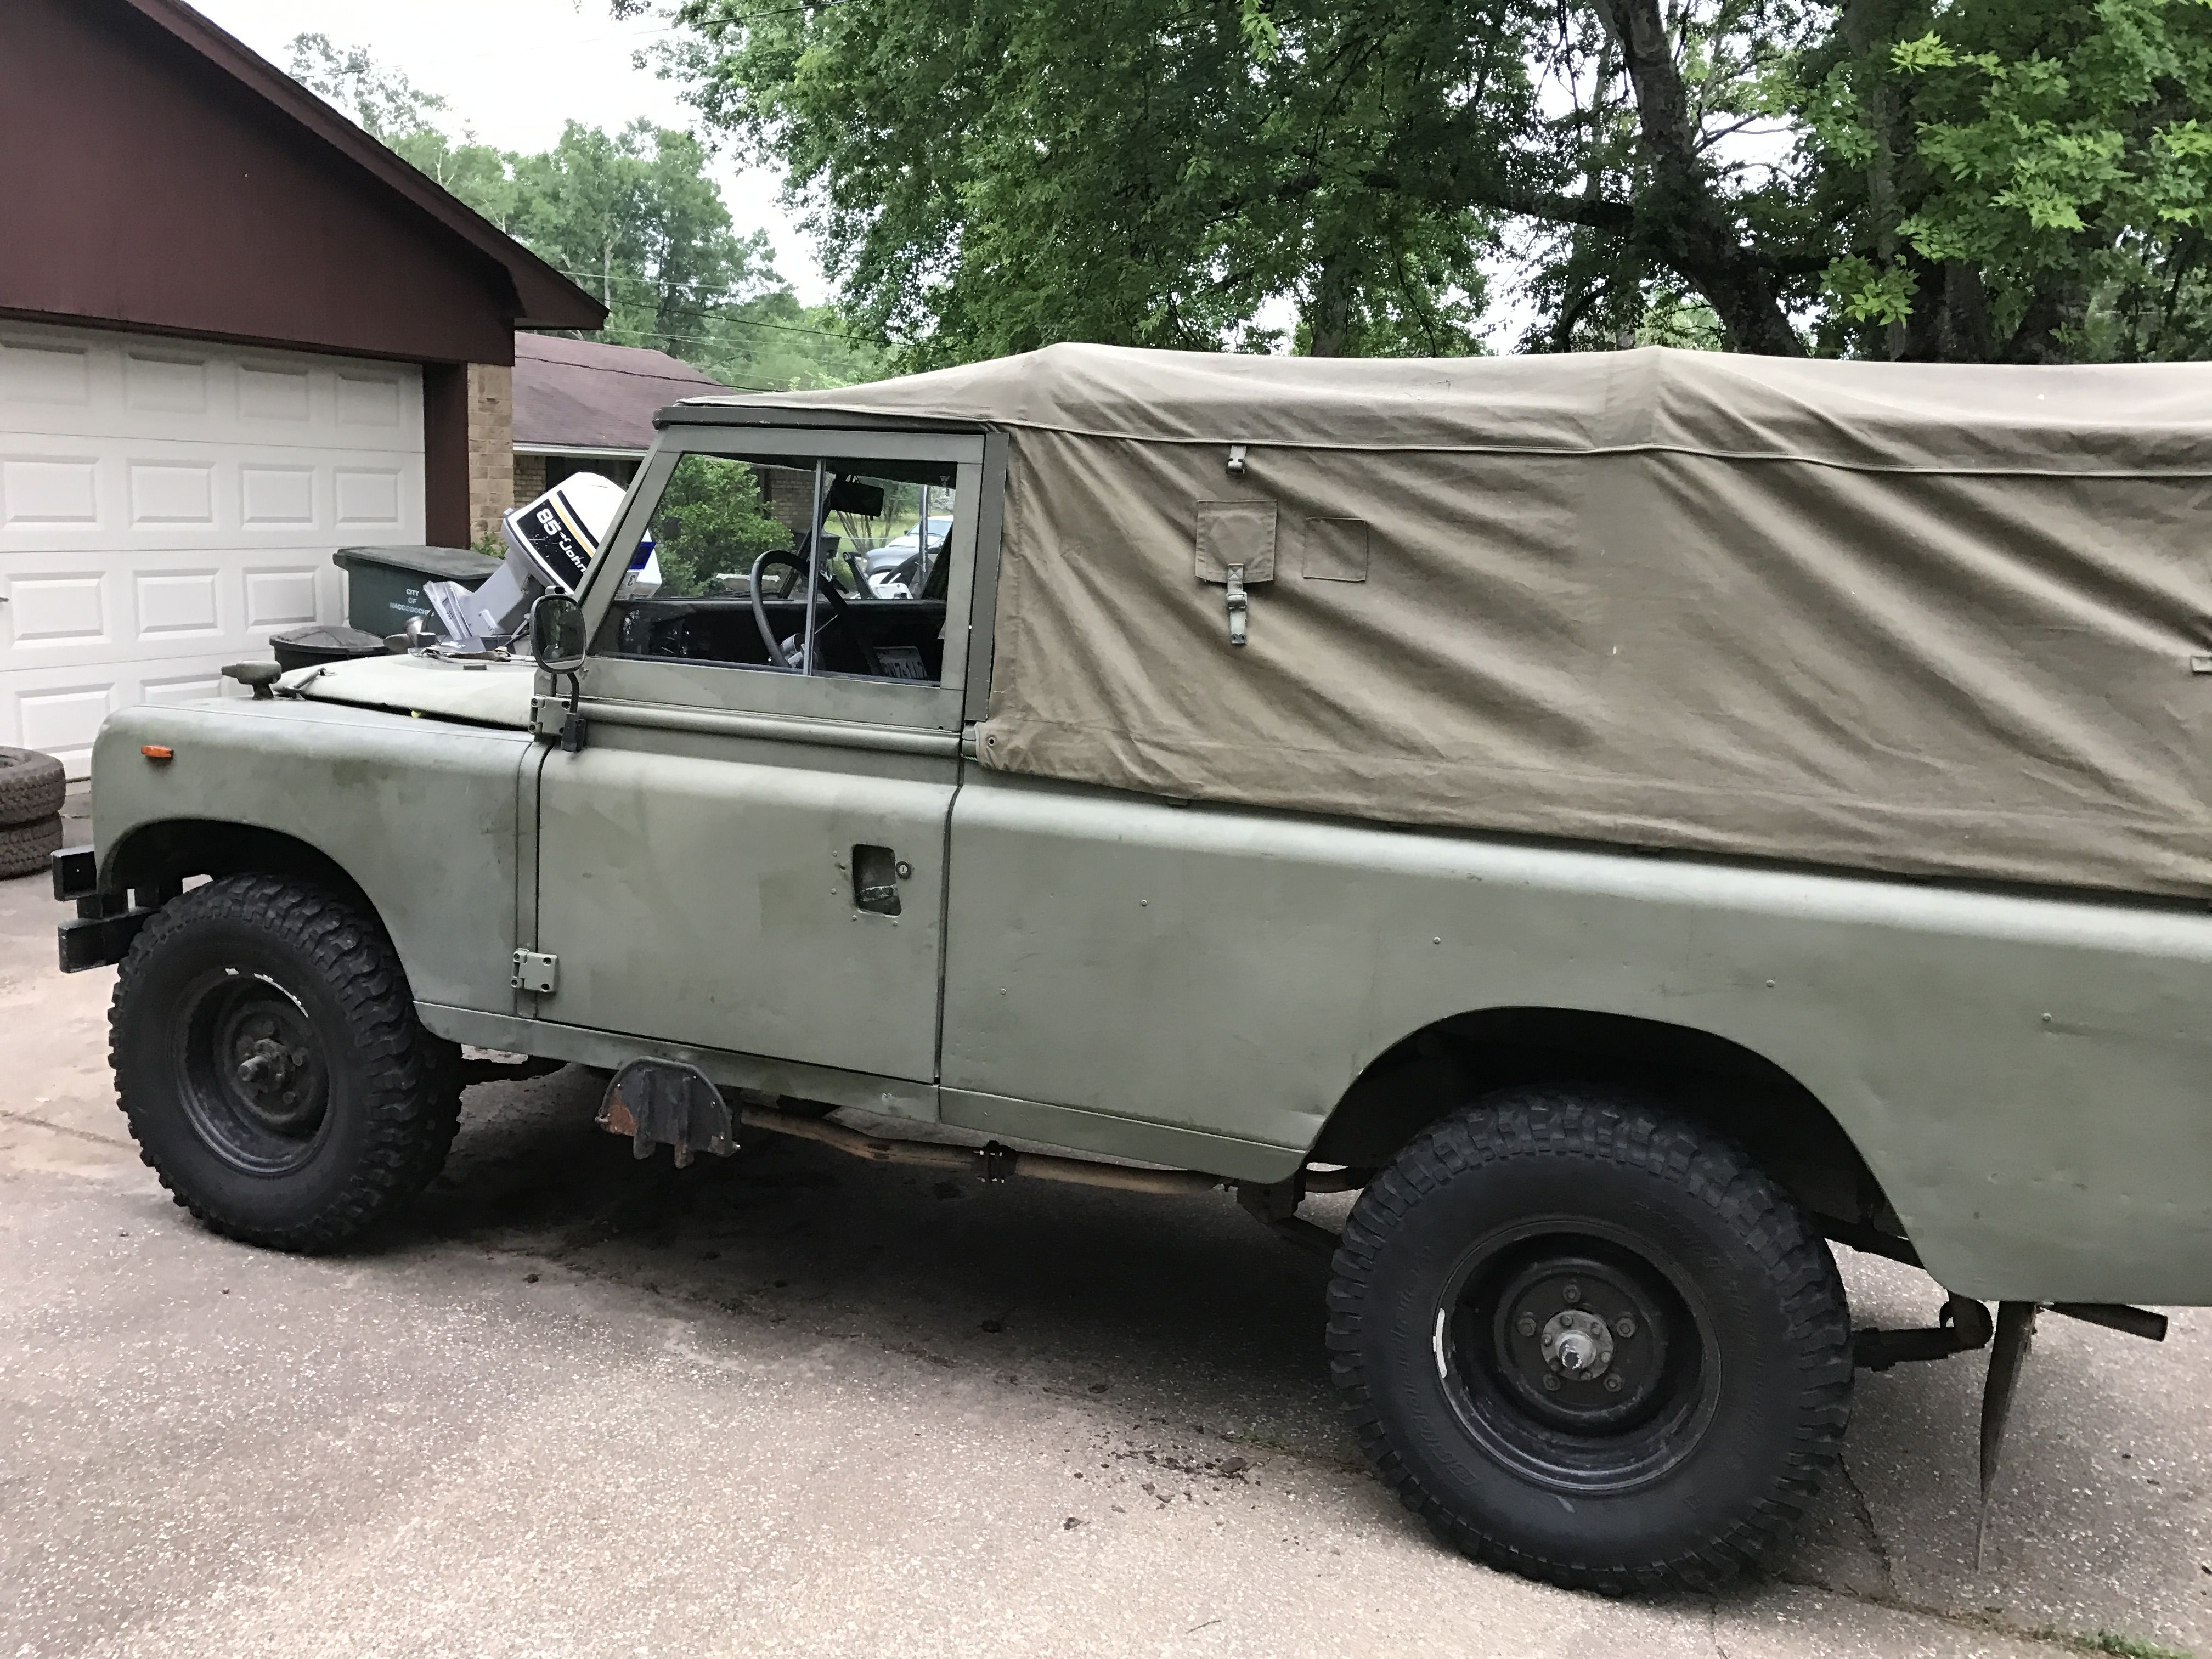 Pin by Patrick Kuhns on Land Rover Pinterest